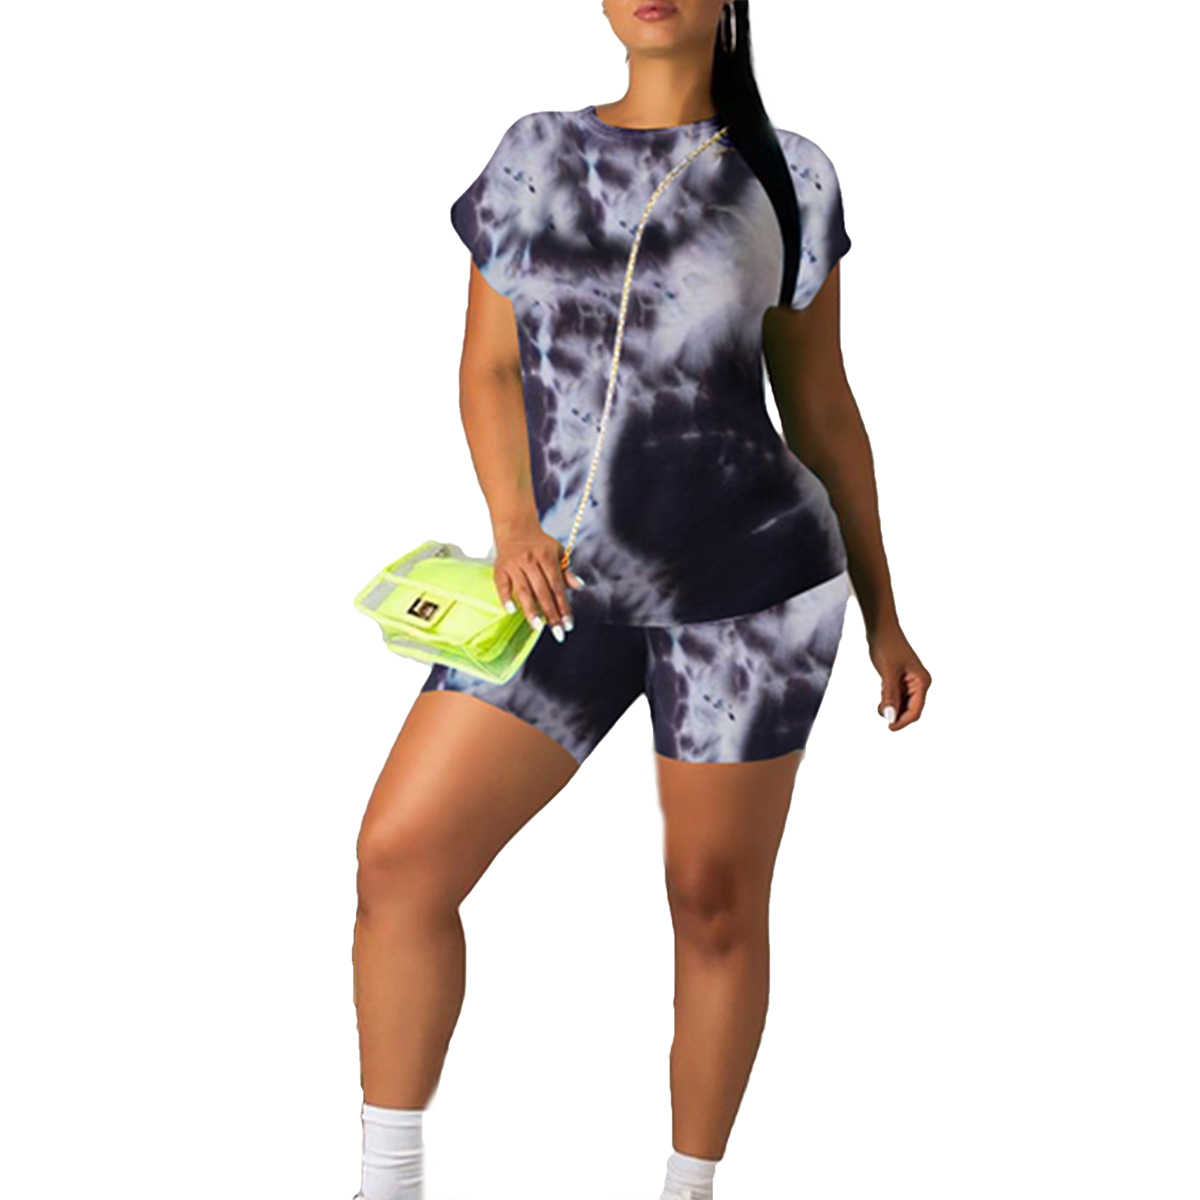 Womens 2 Piece Workout Outfit Sports Suit Athletic Tracksuit T-Shirt and Shorts Slim Fit Yoga Clothes Set